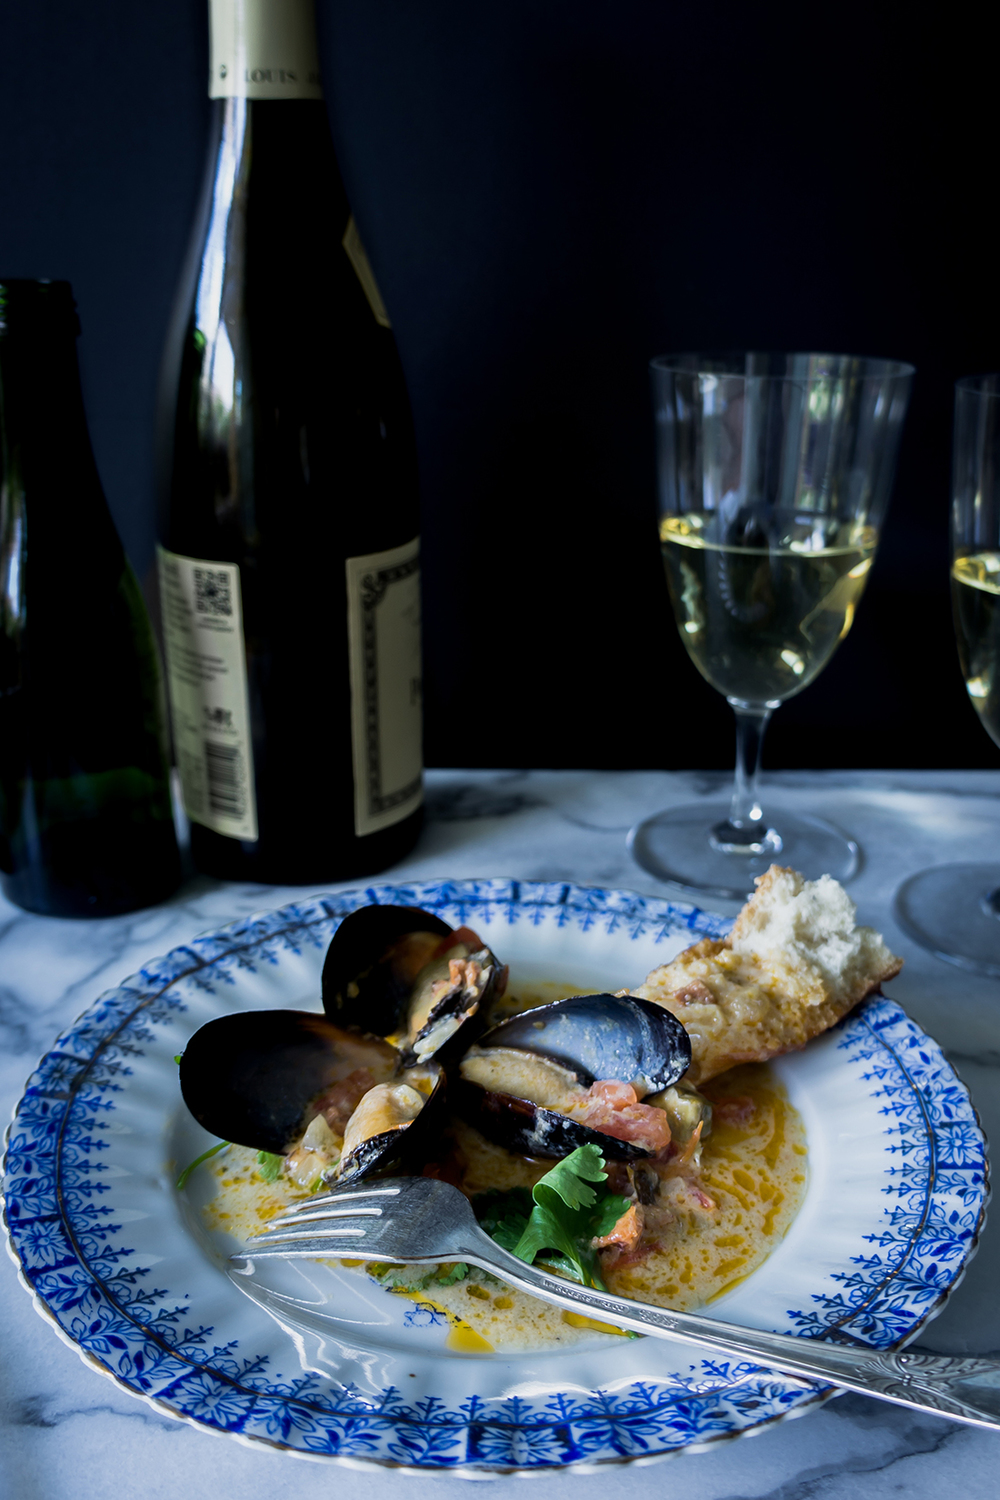 The best way to serve mussels is also with great white wine.